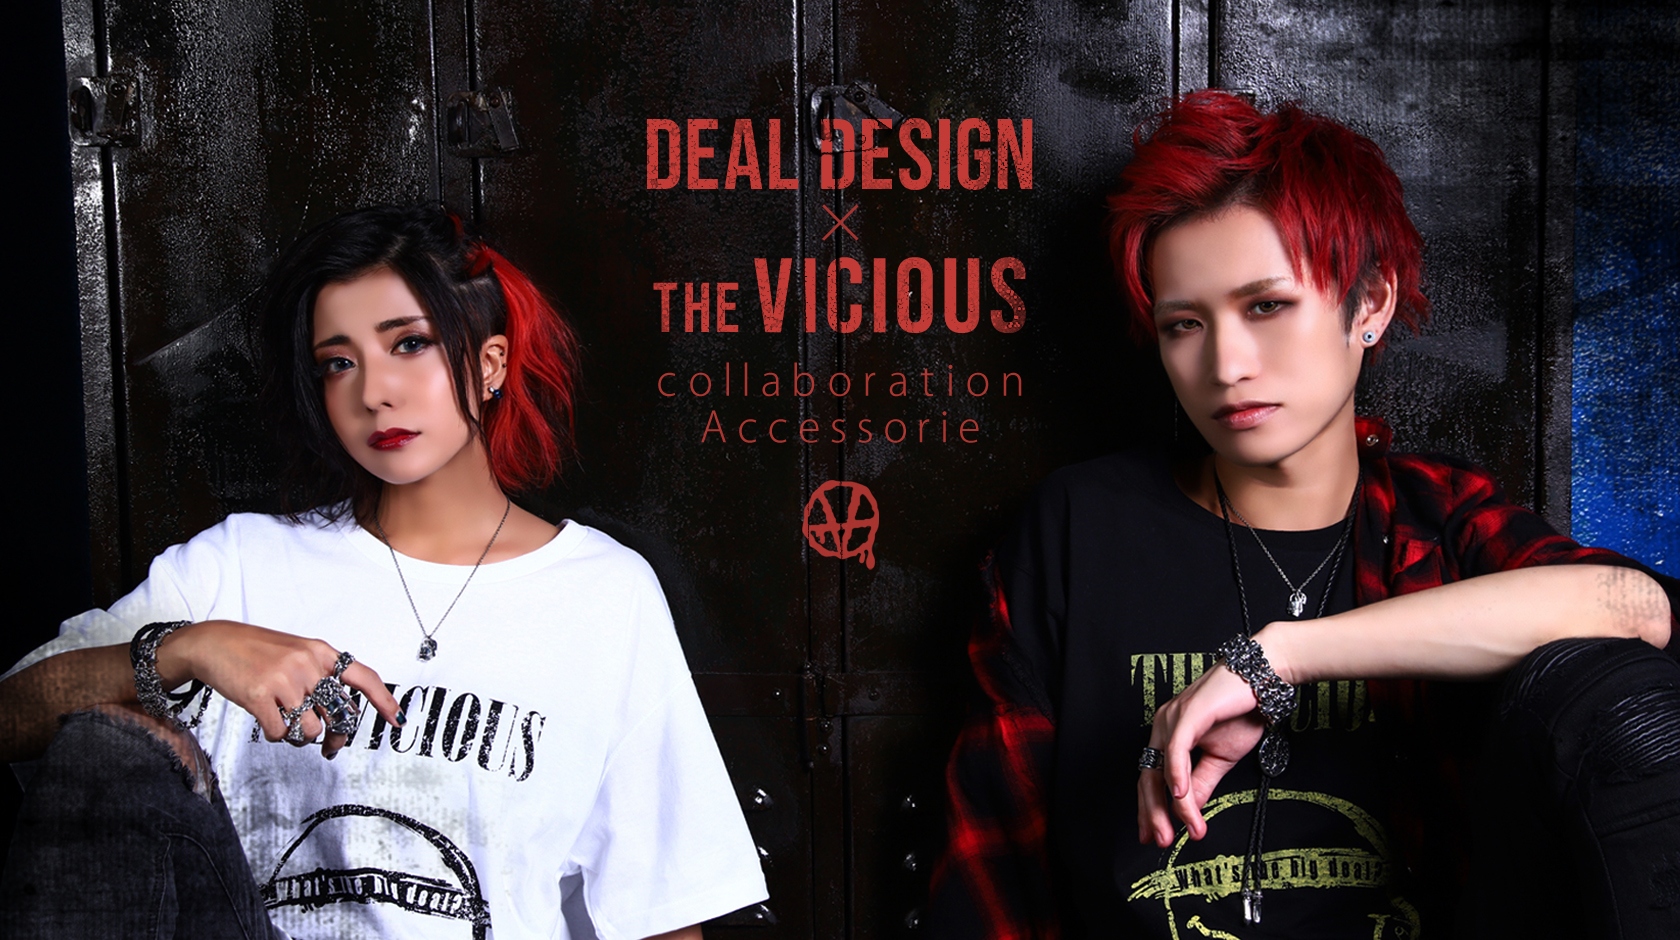 DEALDESIGN×THE VISIOUS